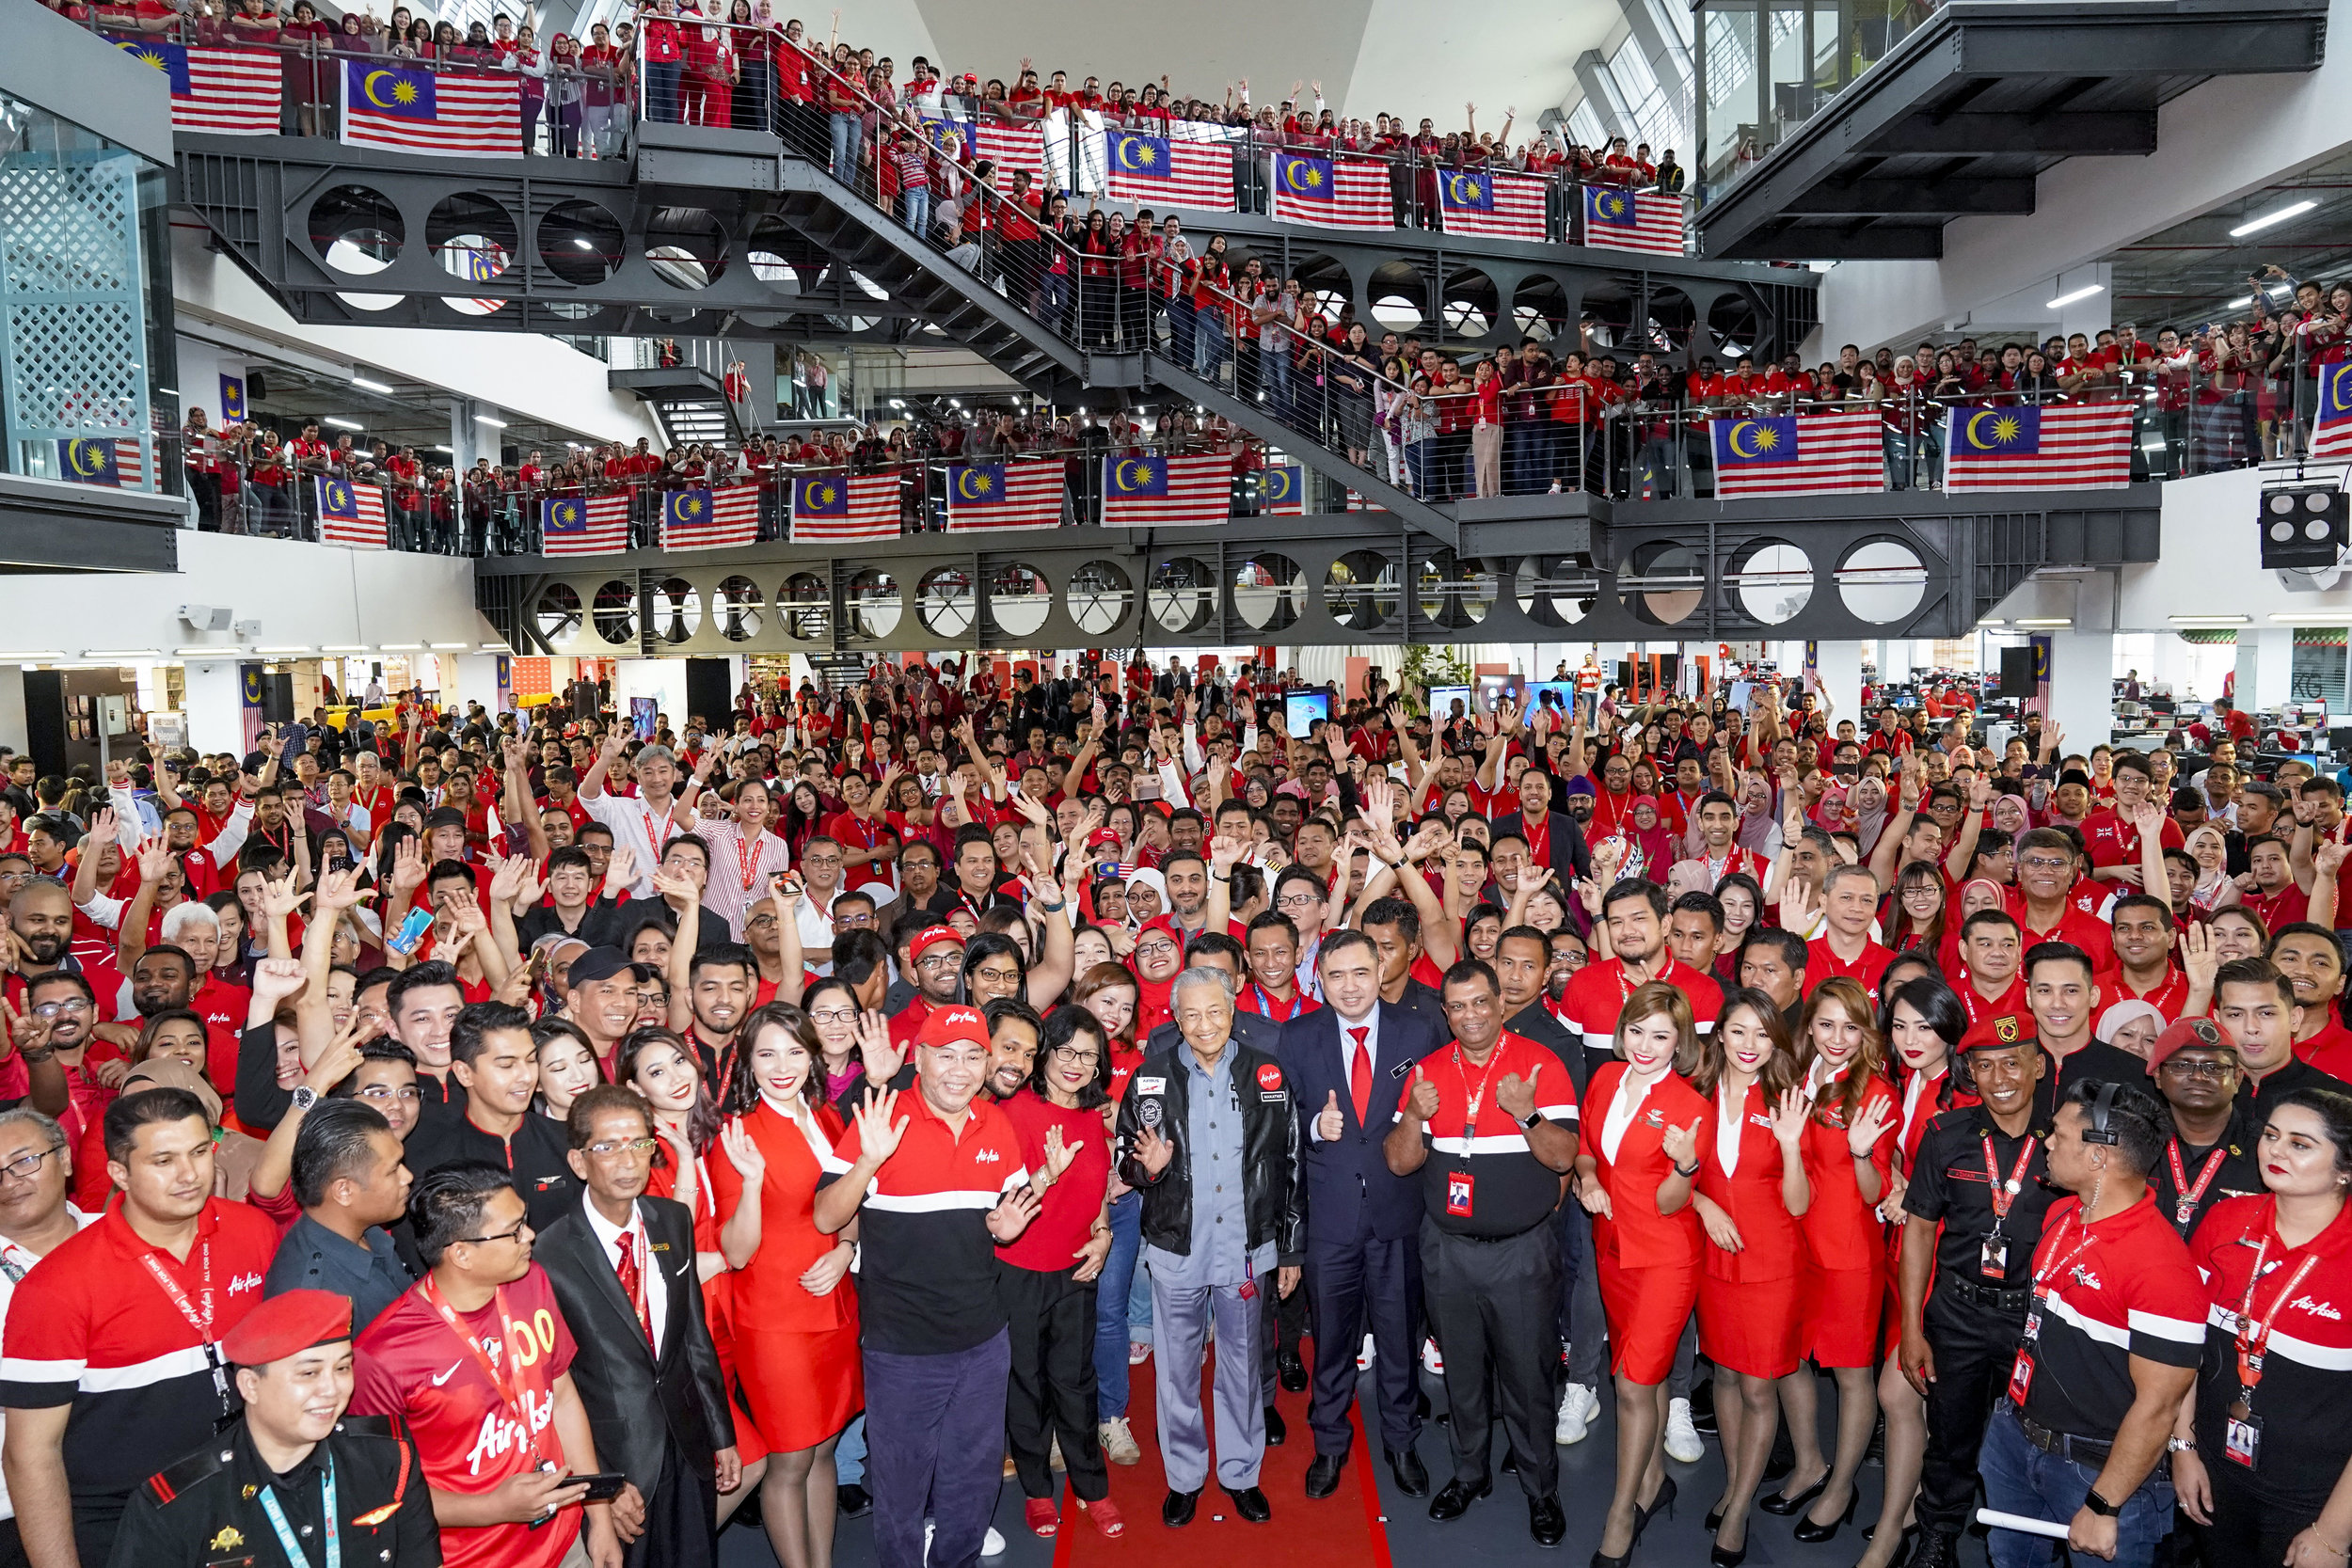 Photo Caption: (Middle) Prime Minister of Malaysia, Yang Amat Berhormat Tun Dr Mahathir Bin Mohamad with AirAsia management and Allstars during his Official Visit to AirAsia RedQ in Sepang today.